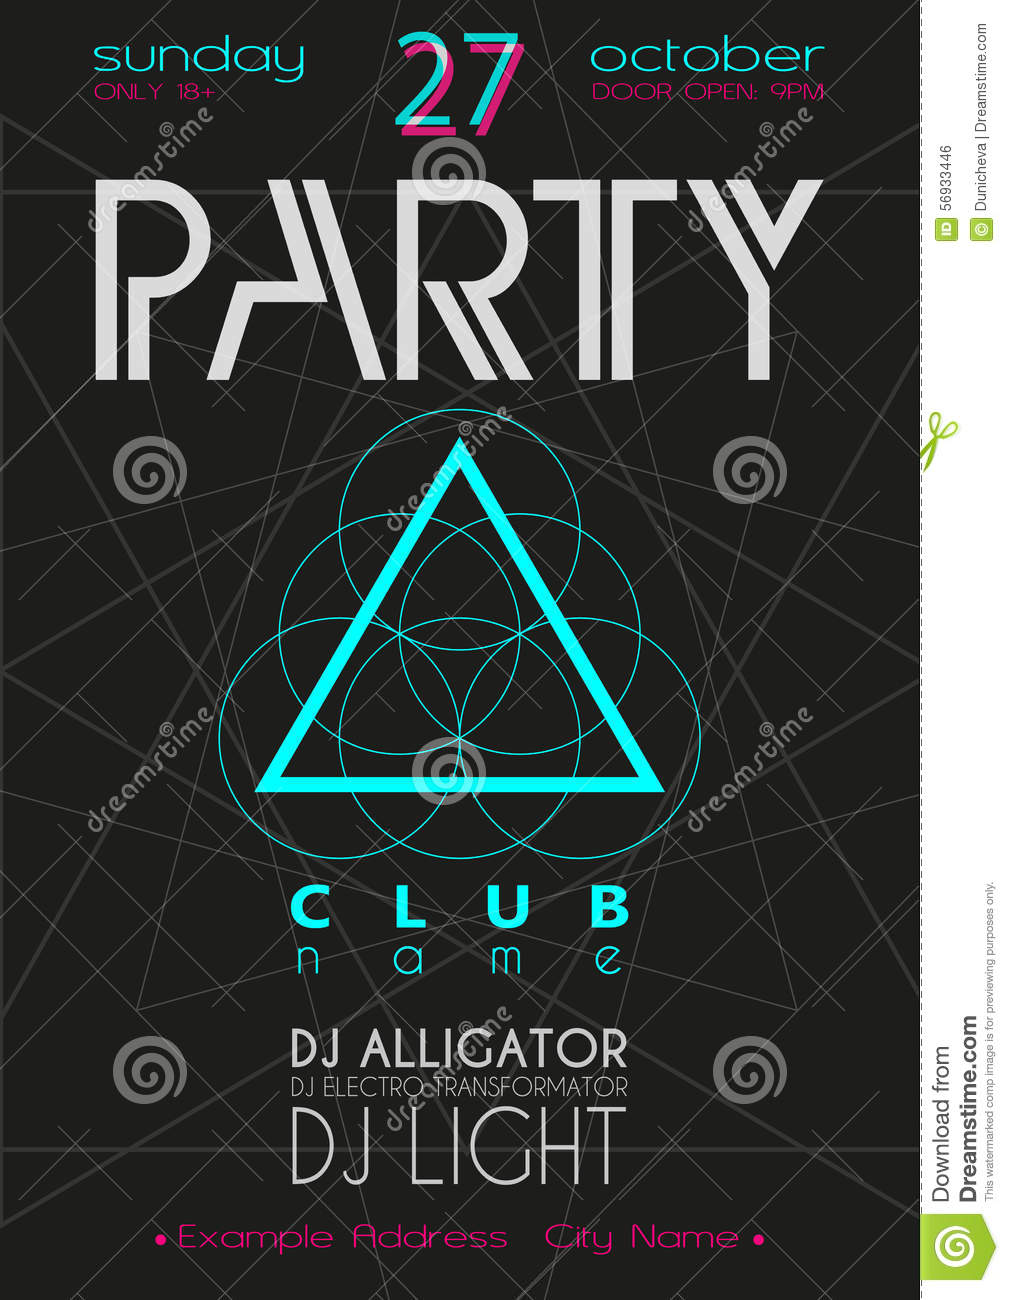 Party Flyer Nightclub Flyer Photo Image 56933446 – Night Club Flyer